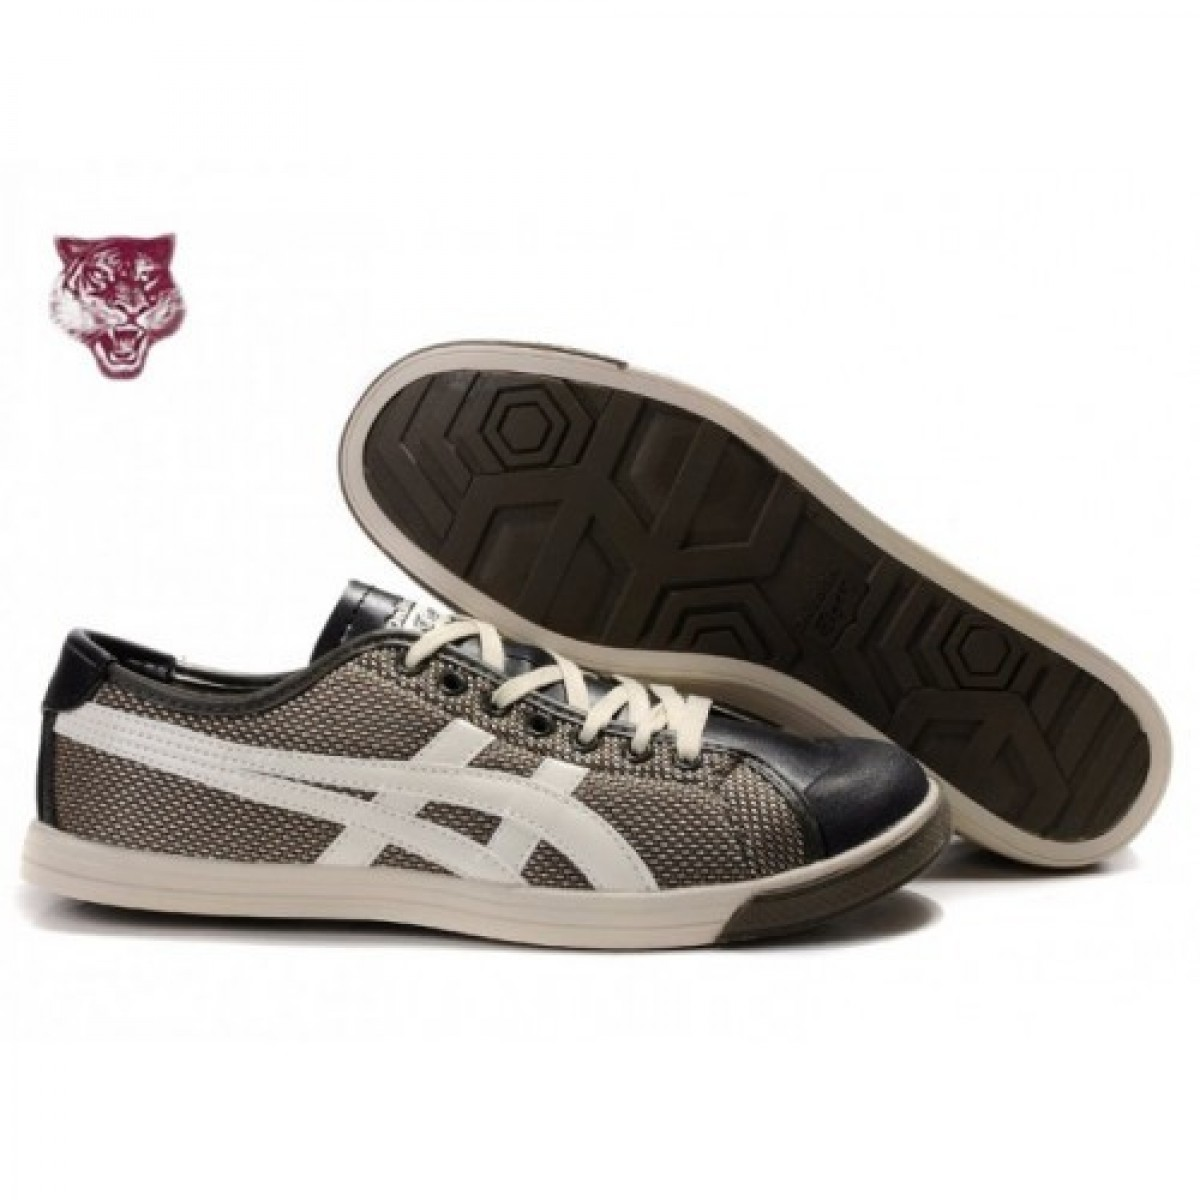 OK9674 Soldes Asics Onitsuka Tiger Coolidge Lo Brown Blanc Noir Chaussures 81644844 Pas Cher